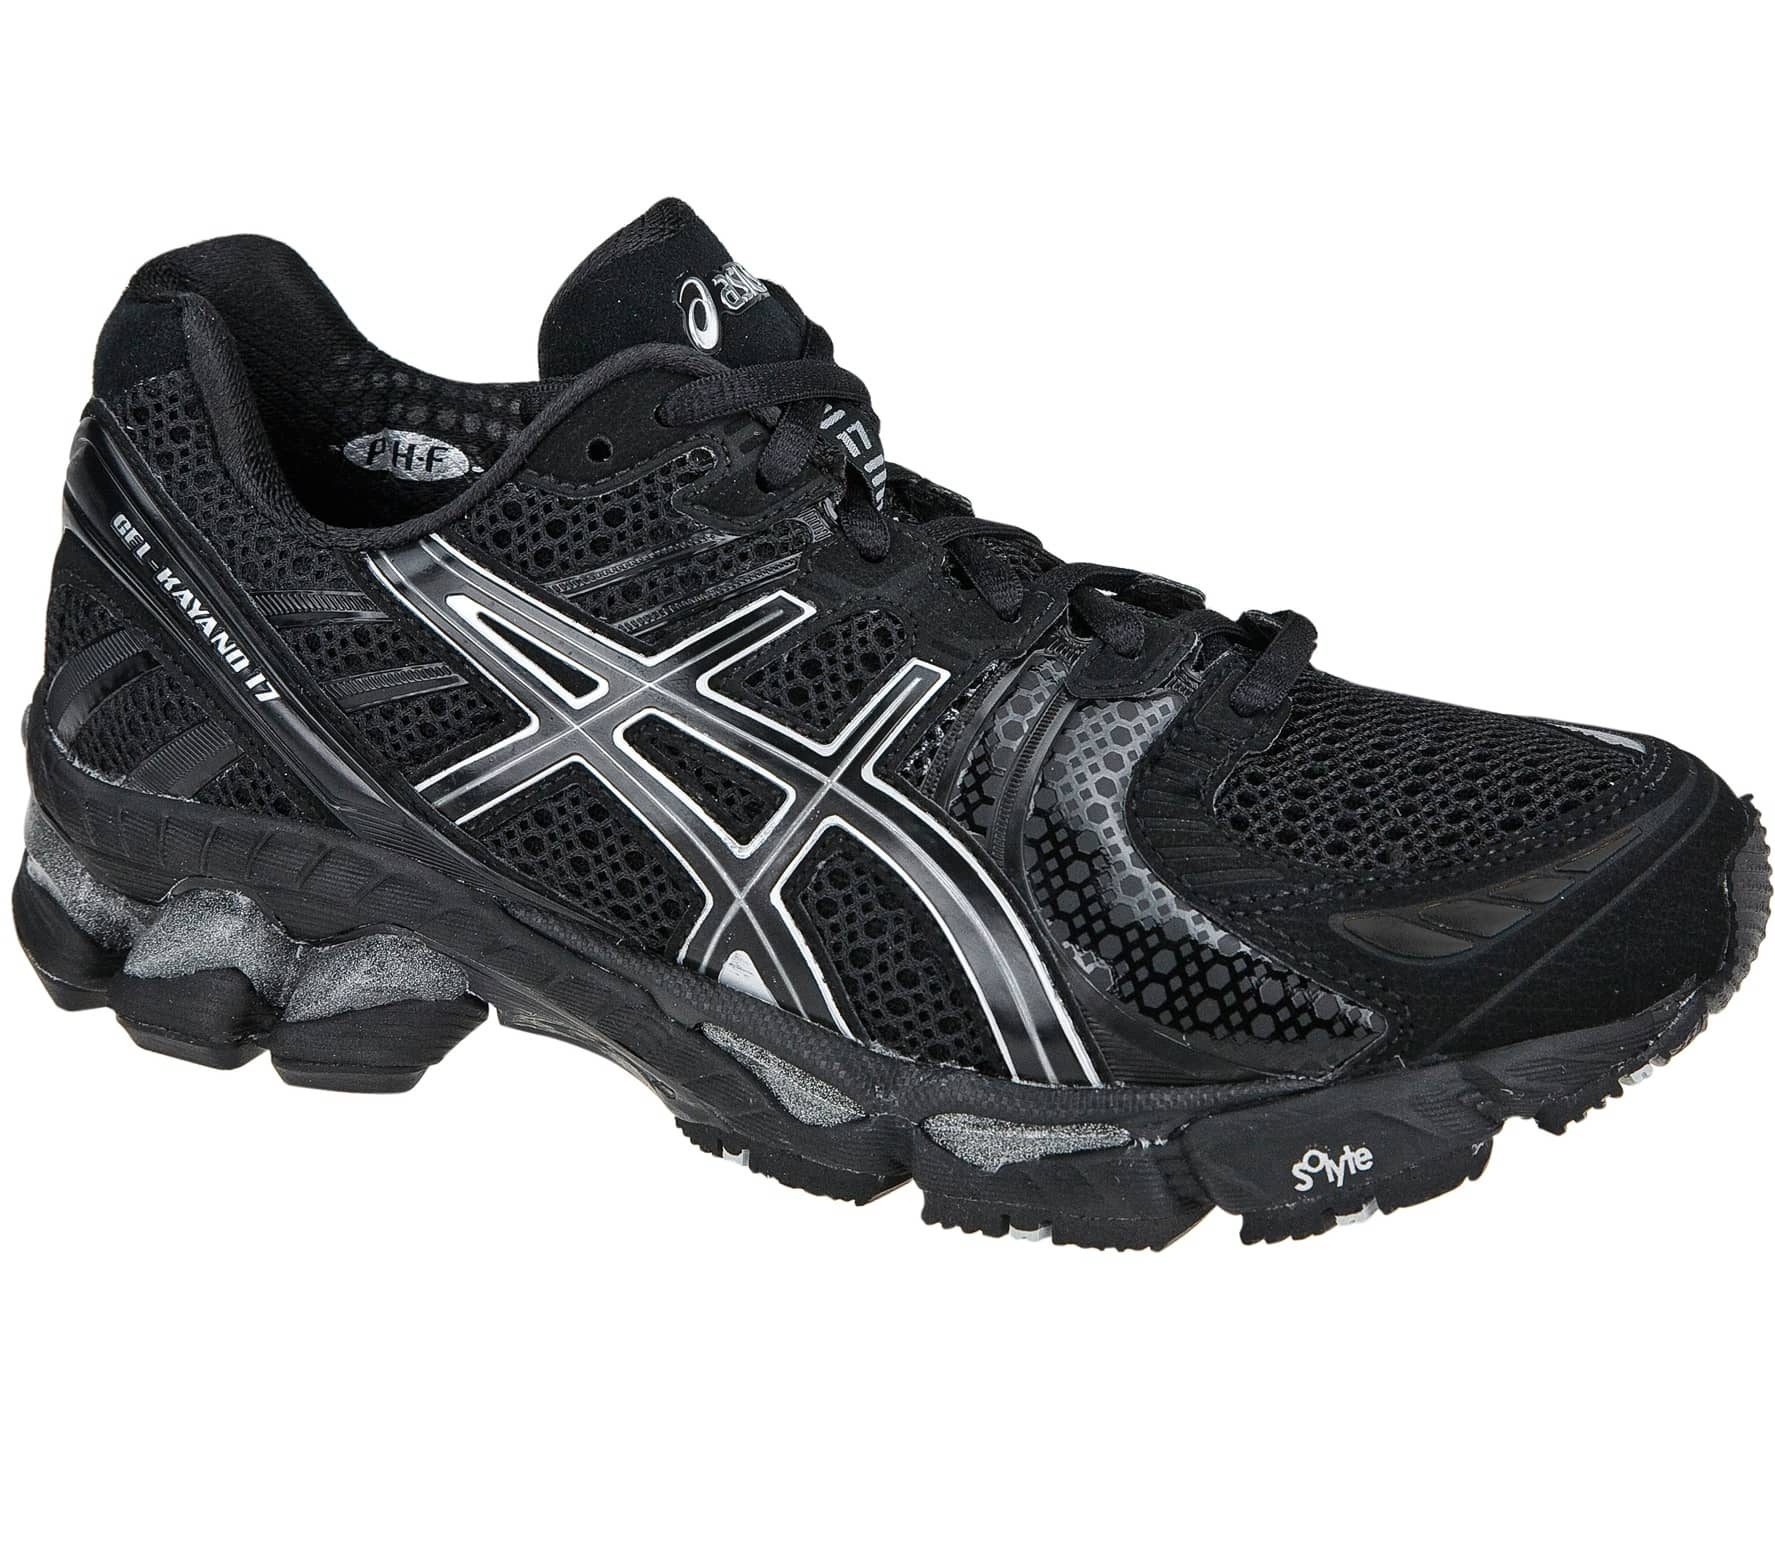 check out 2108d 61358 Asics - Running Shoe Gel-Kayano 17 W black silver